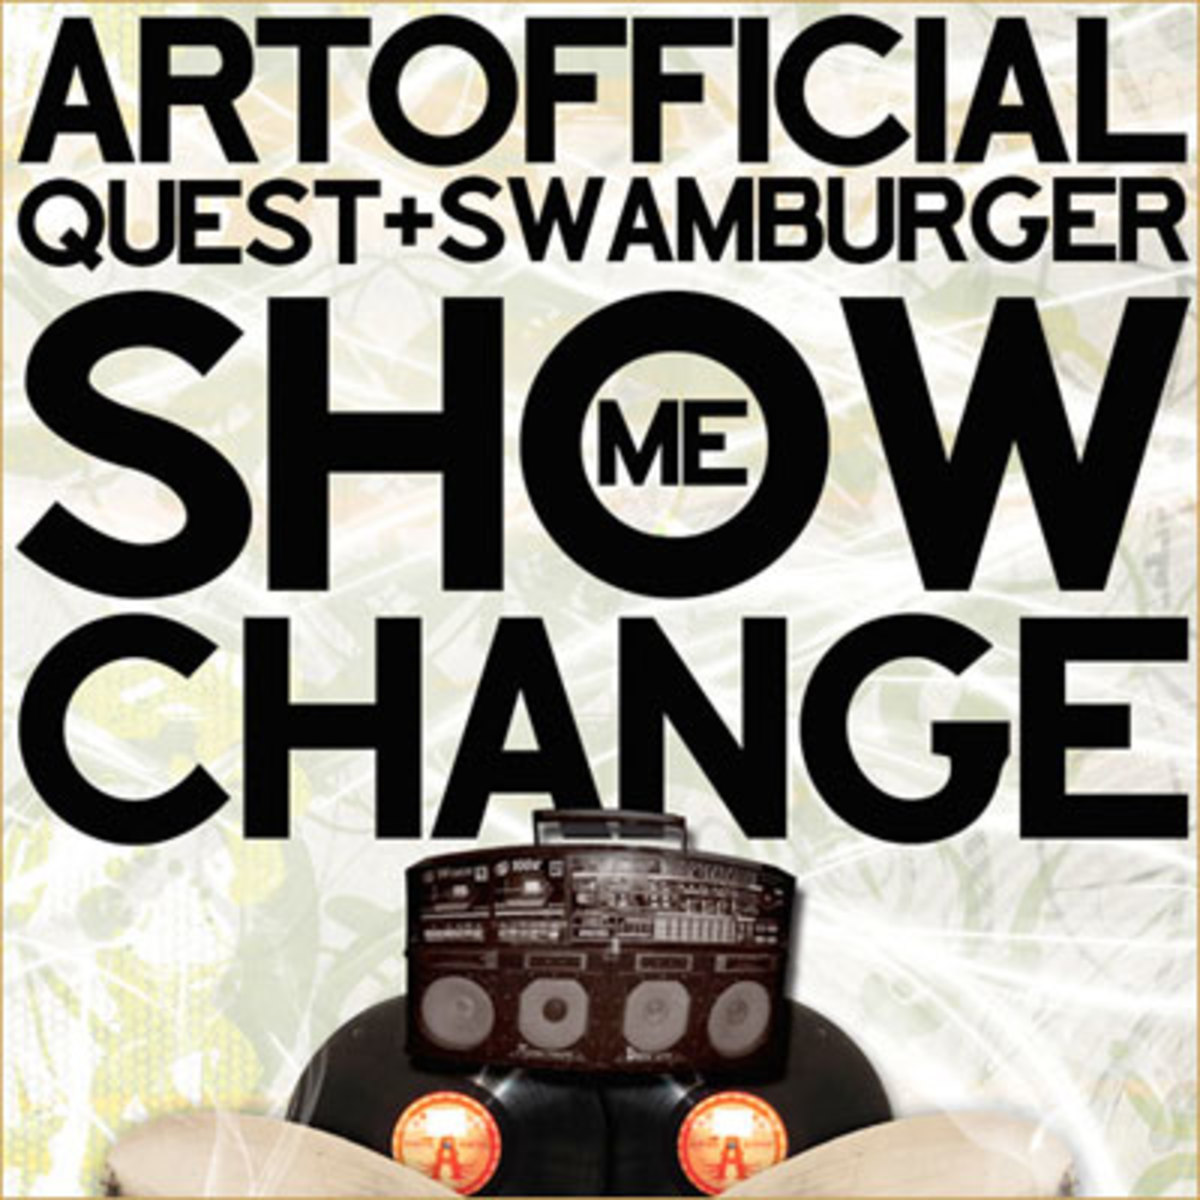 artofficial-showmechange.jpg